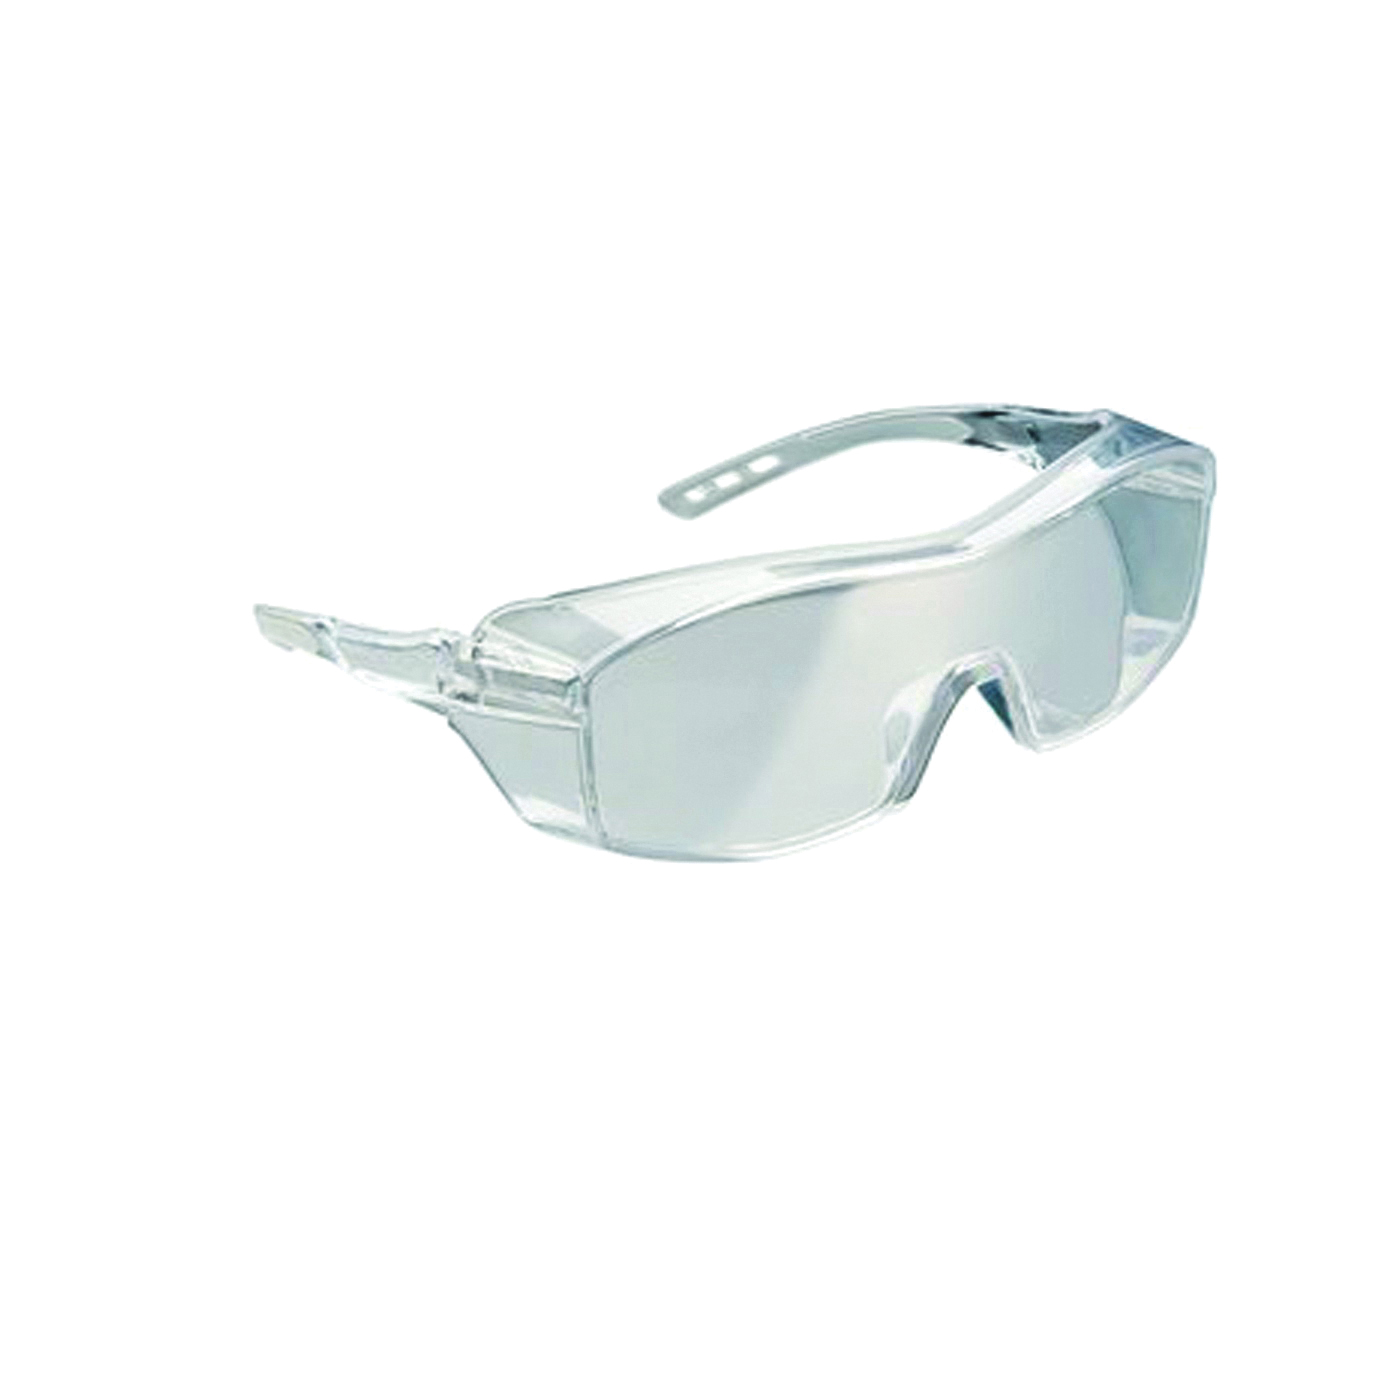 Picture of 3M 47030-WV6 Eyeglass Protector, Anti-Scratch Lens, Clear Frame